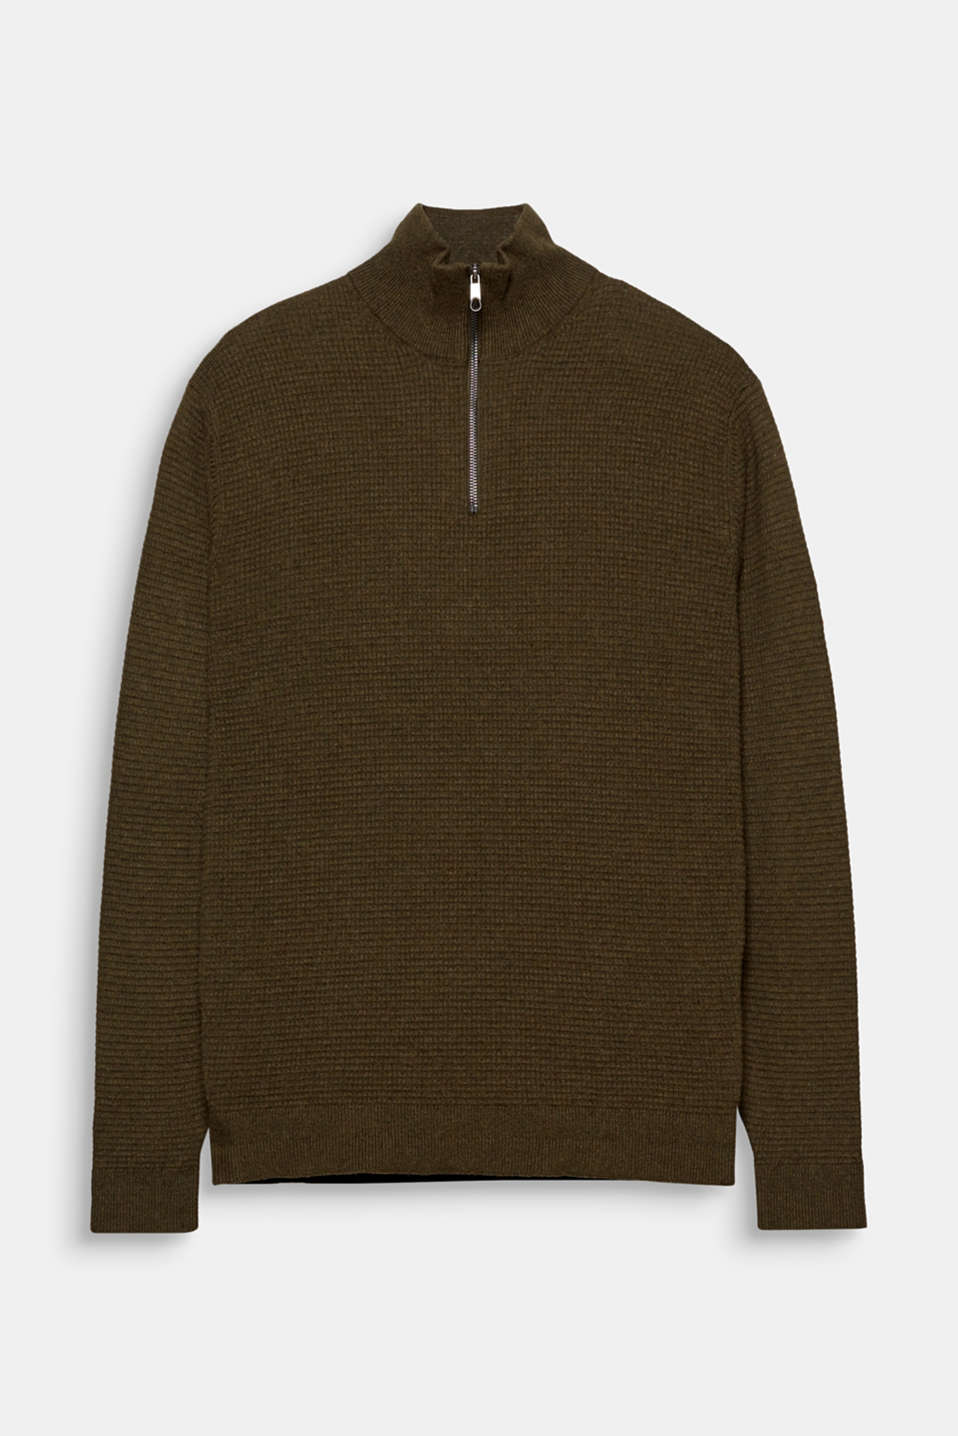 Feels wonderful against the skin: fine cashmere makes this textured jumper with a zip collar a favourite piece!